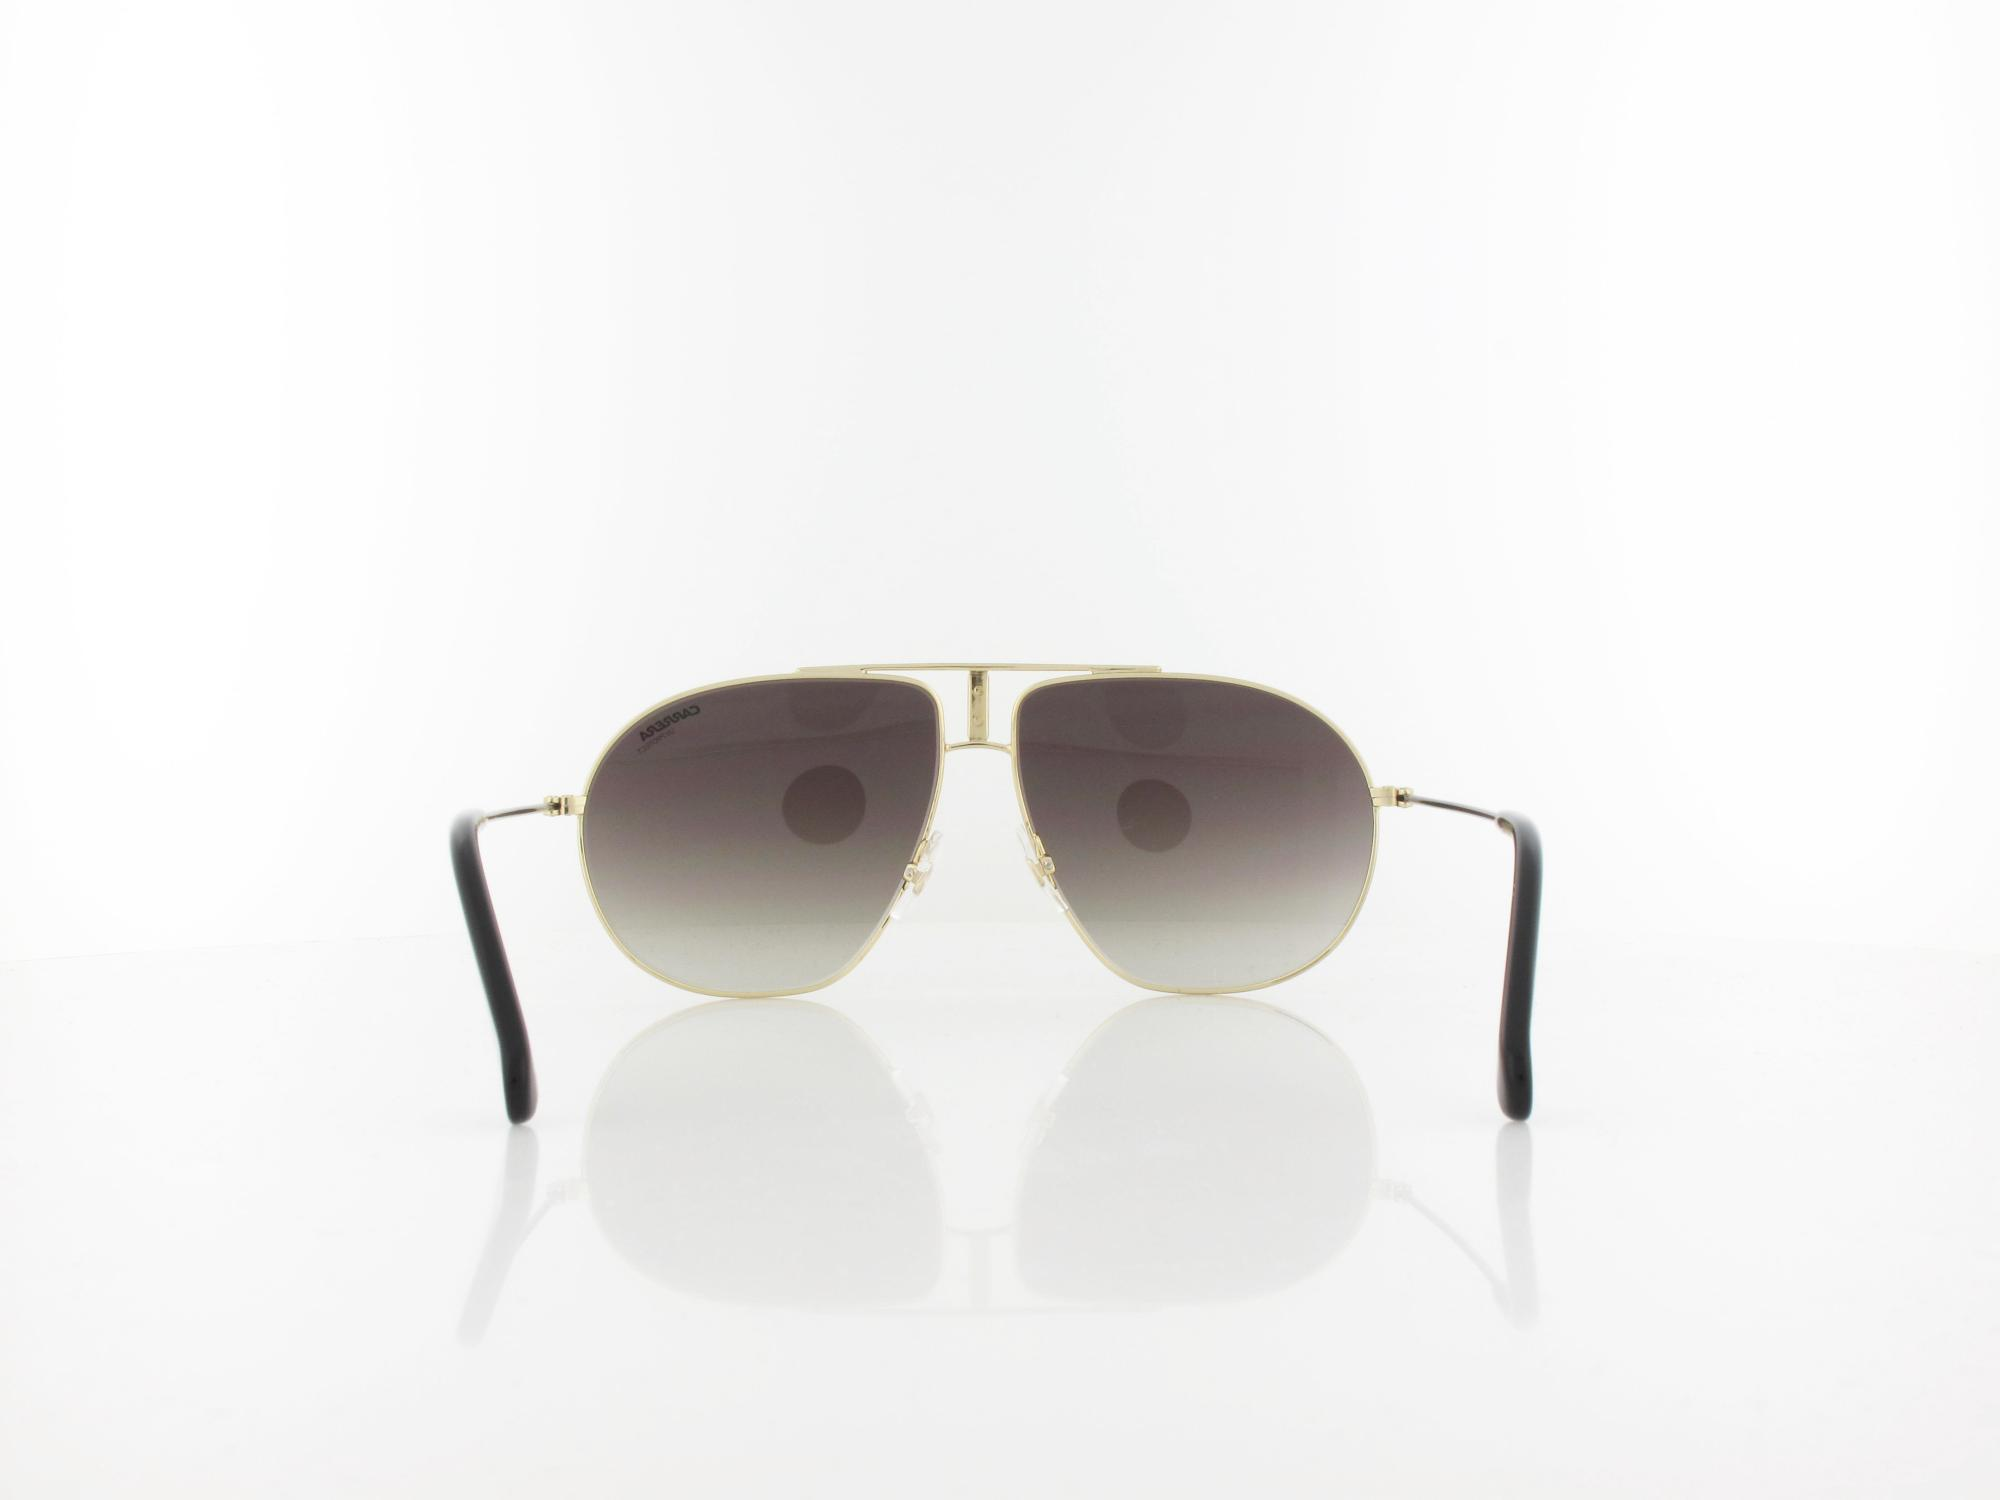 Carrera | Bound 2M2 HA 60 | black gold / brown gradient